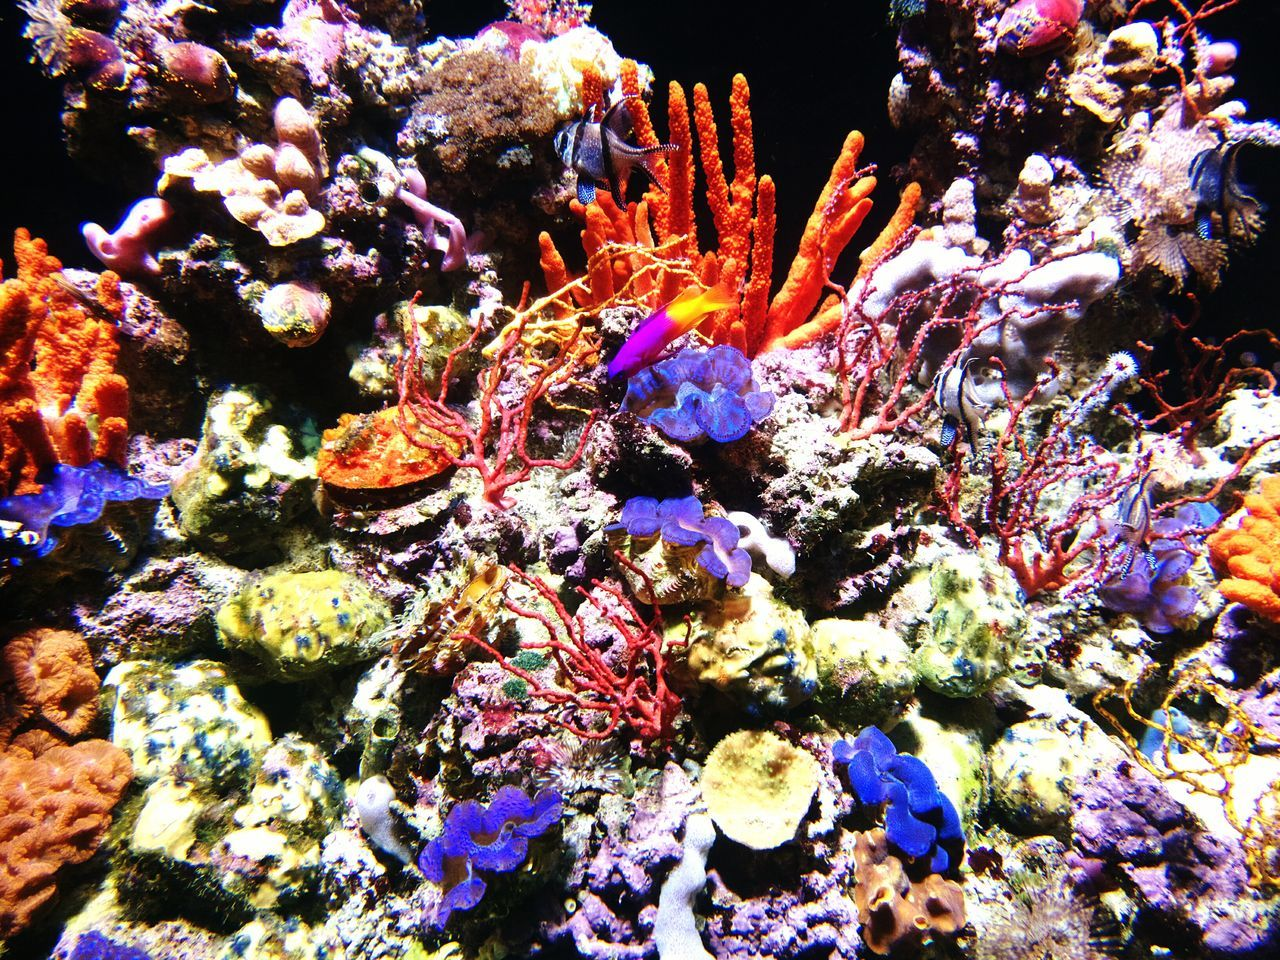 underwater, coral, sea life, no people, multi colored, nature, water, undersea, animal themes, beauty in nature, animals in the wild, swimming, outdoors, day, close-up, aquarium